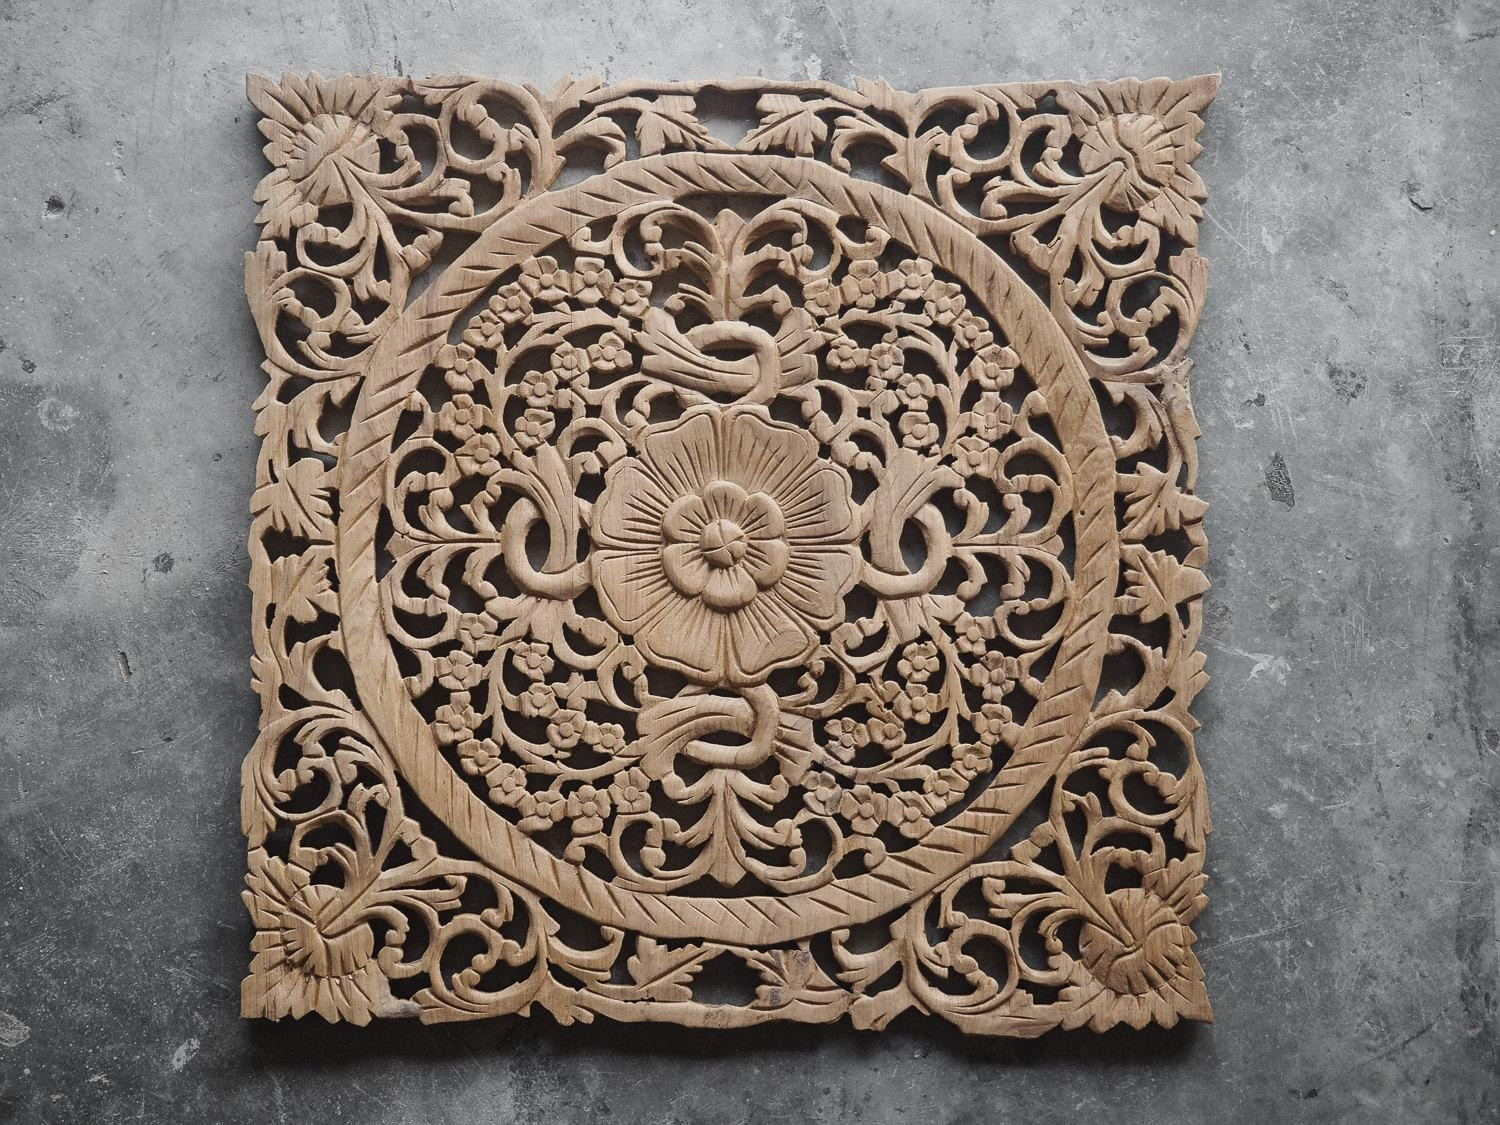 Best ideas about Carved Wood Wall Art . Save or Pin 20 s Wood Carved Wall Art Panels Now.